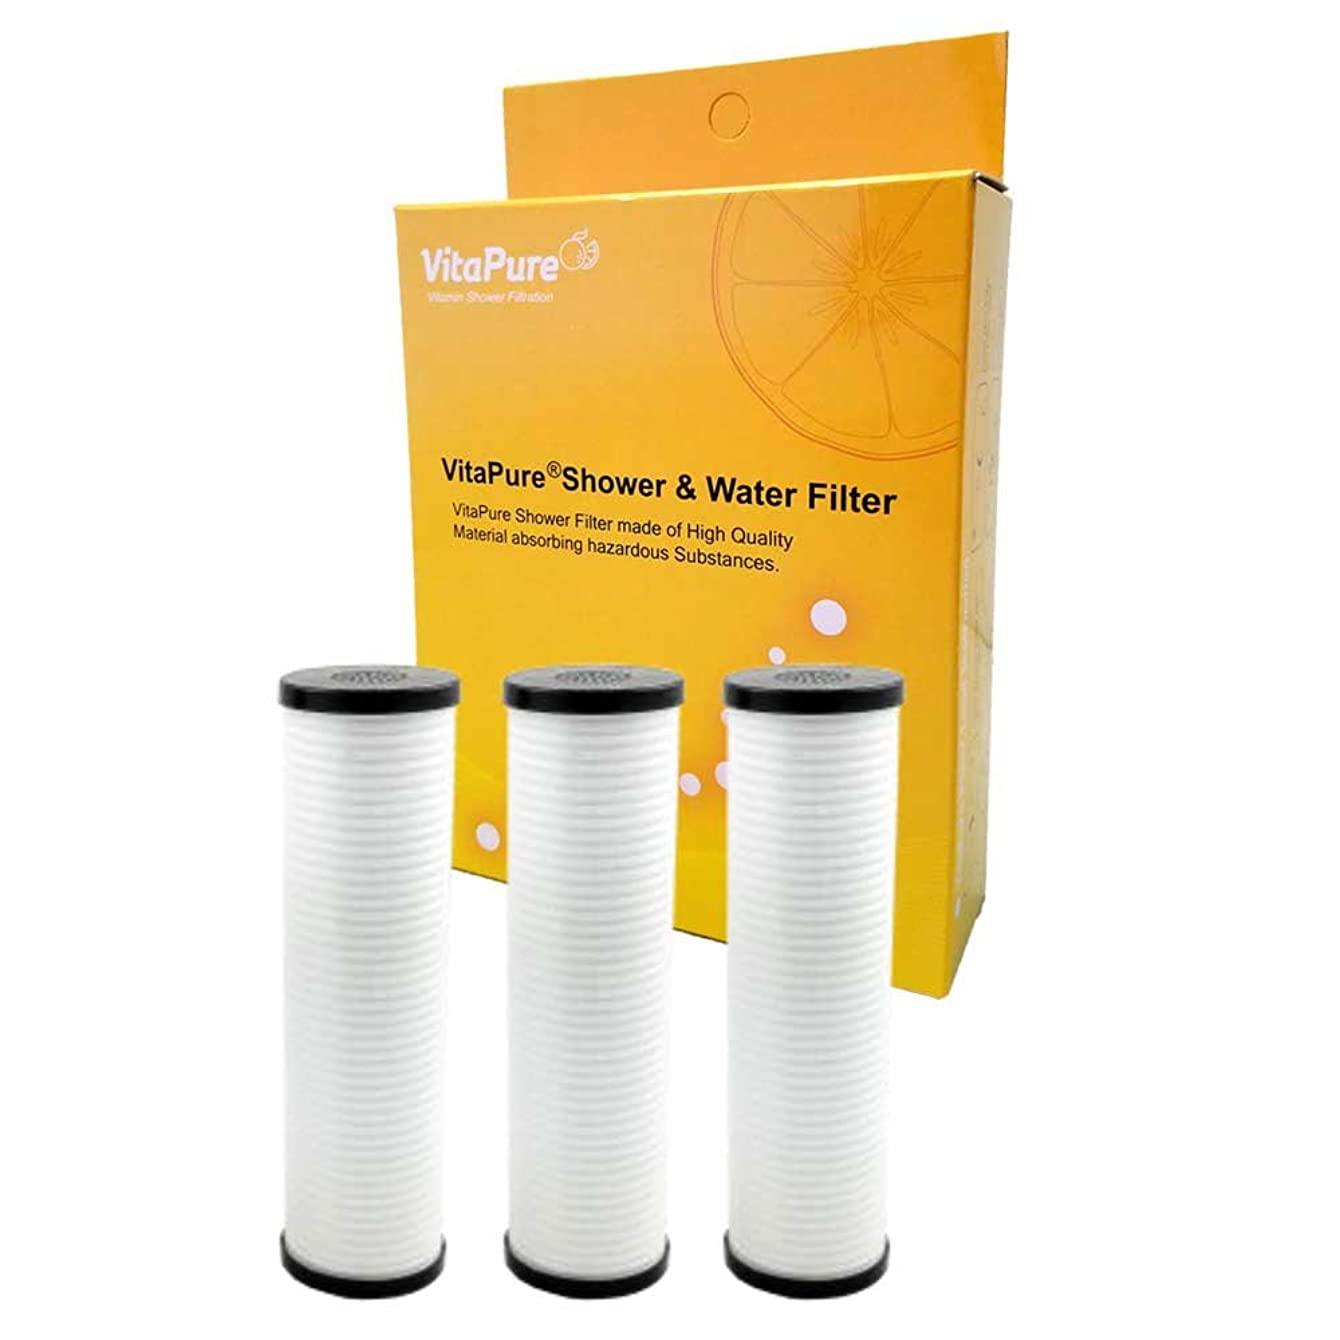 Sonaki PureMax Shower Filter Refill Cartridges - Pack includes 3 ACF Filter - Removes Bacteria, Heavy Metals and Chlorine